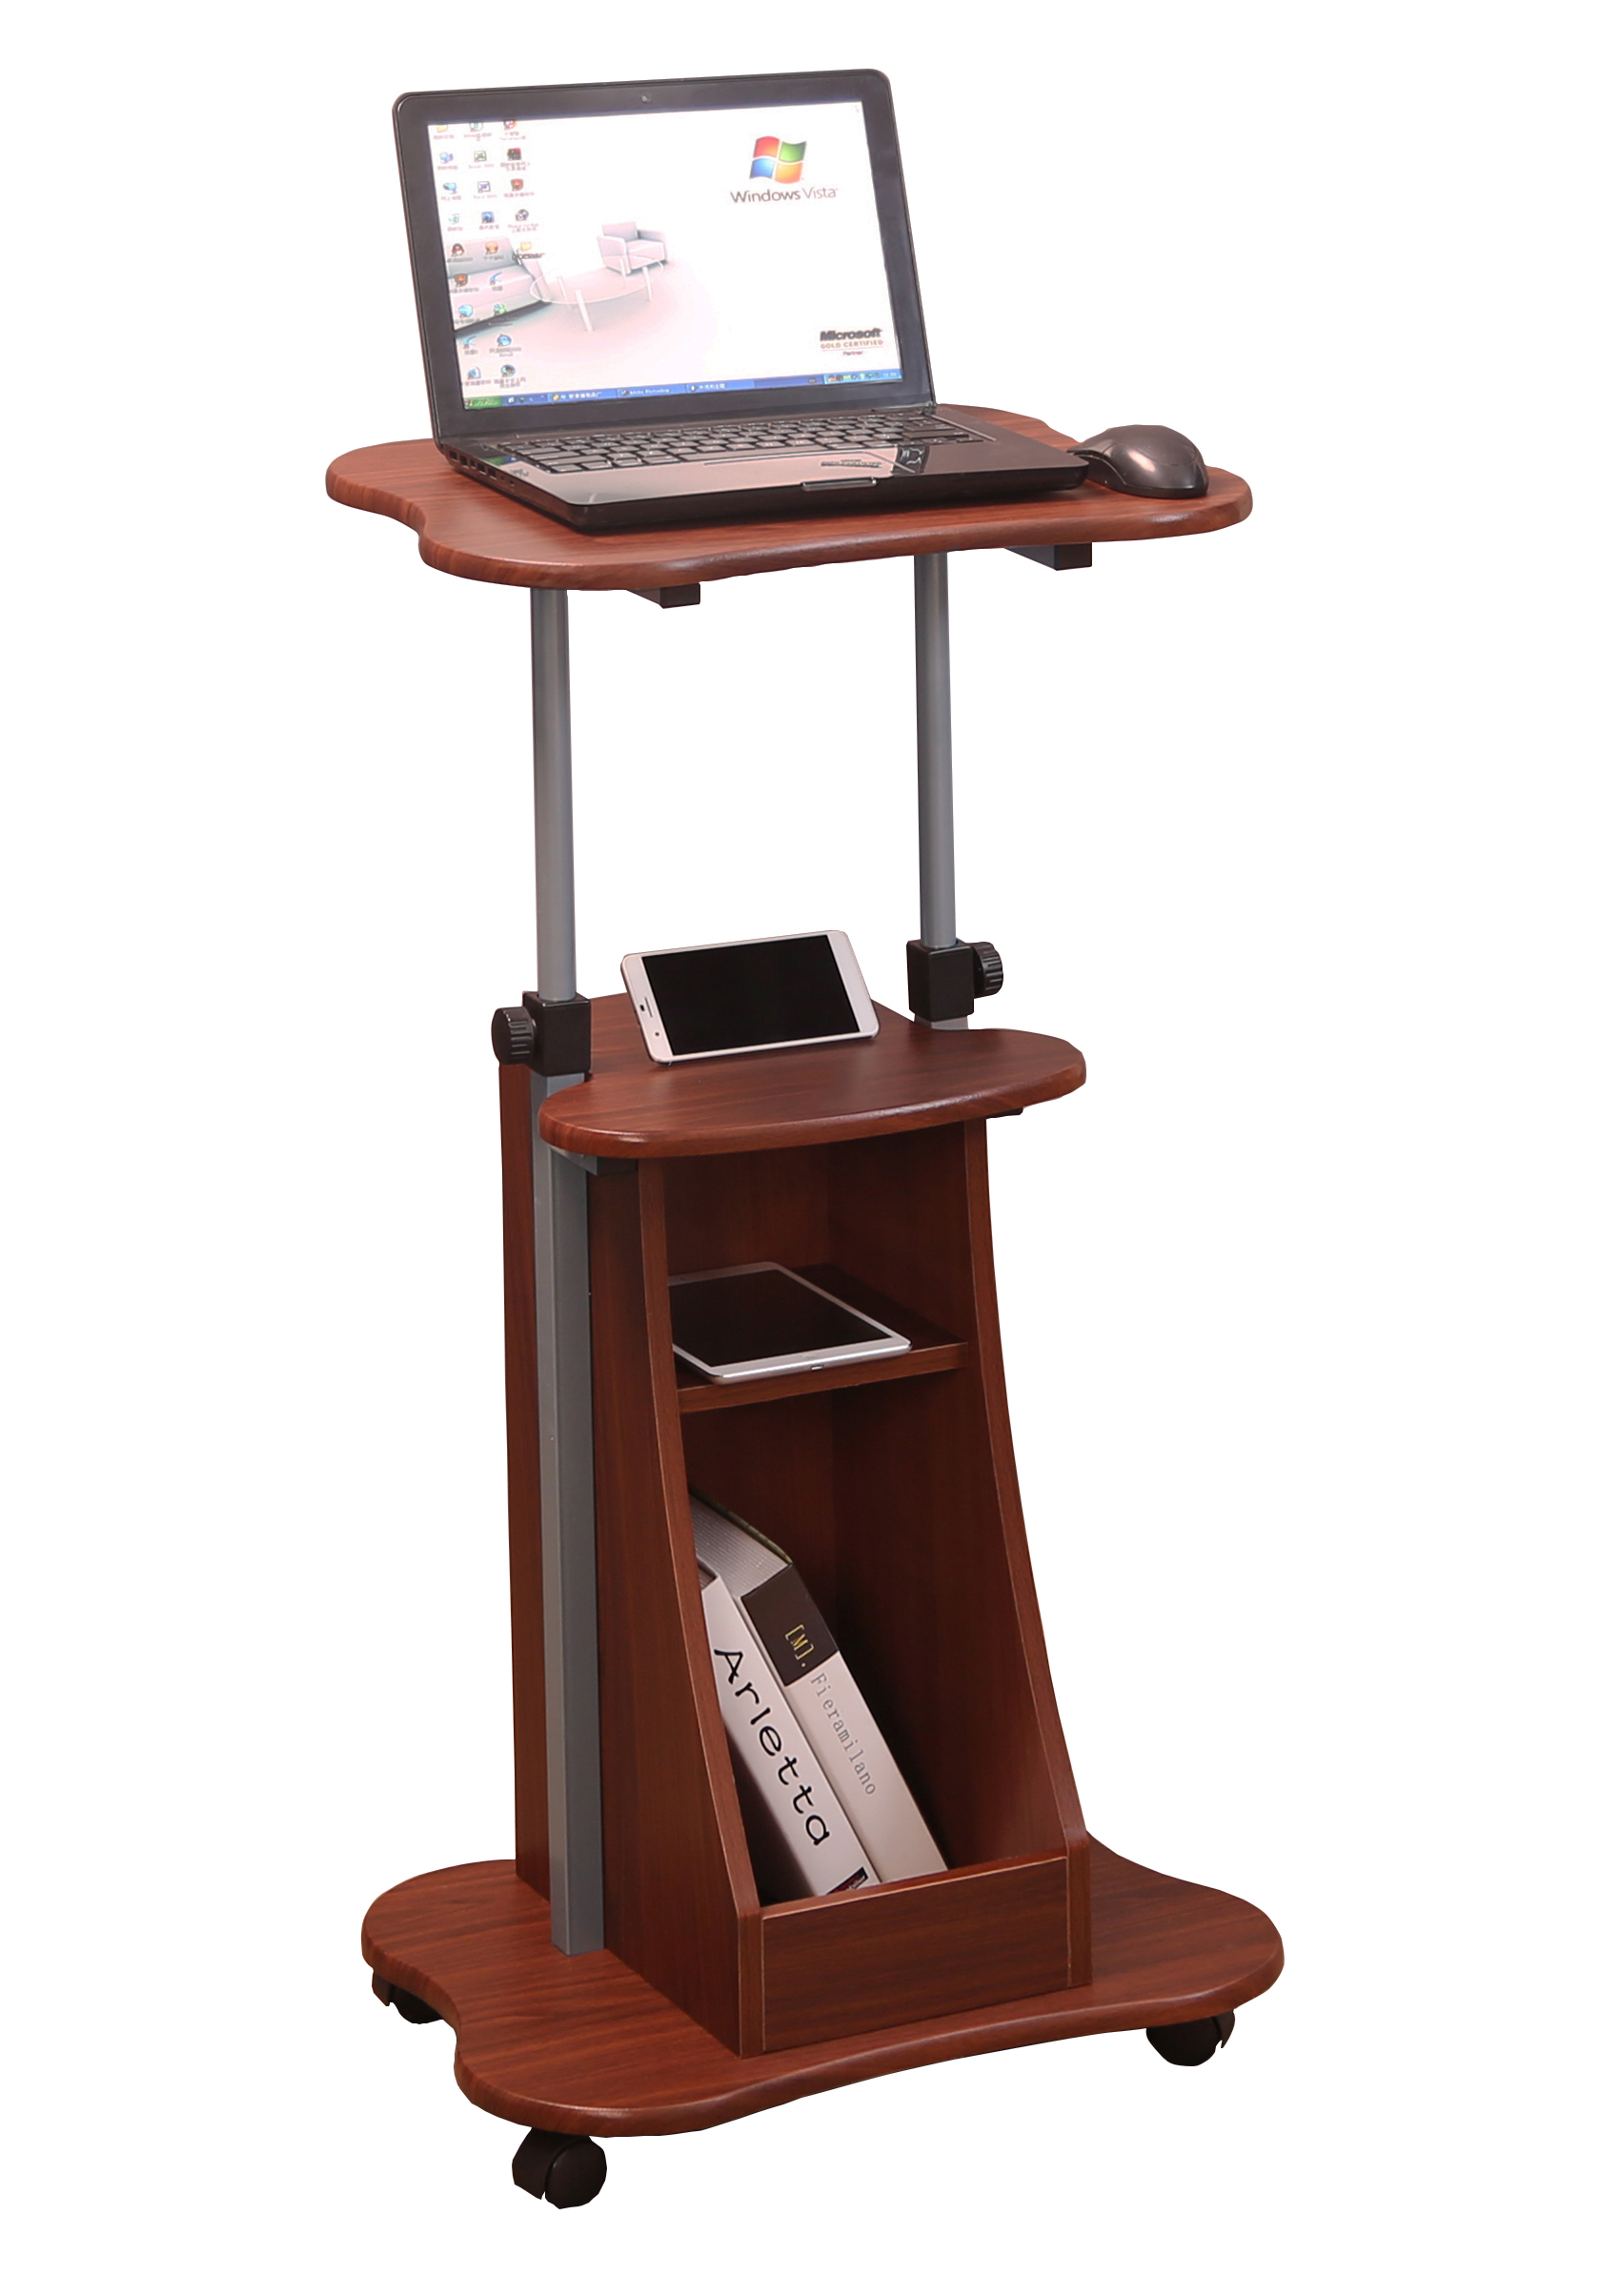 I-AP154-001 MESA STANDING WORKSTATION D3002 LIGTH WALNUT